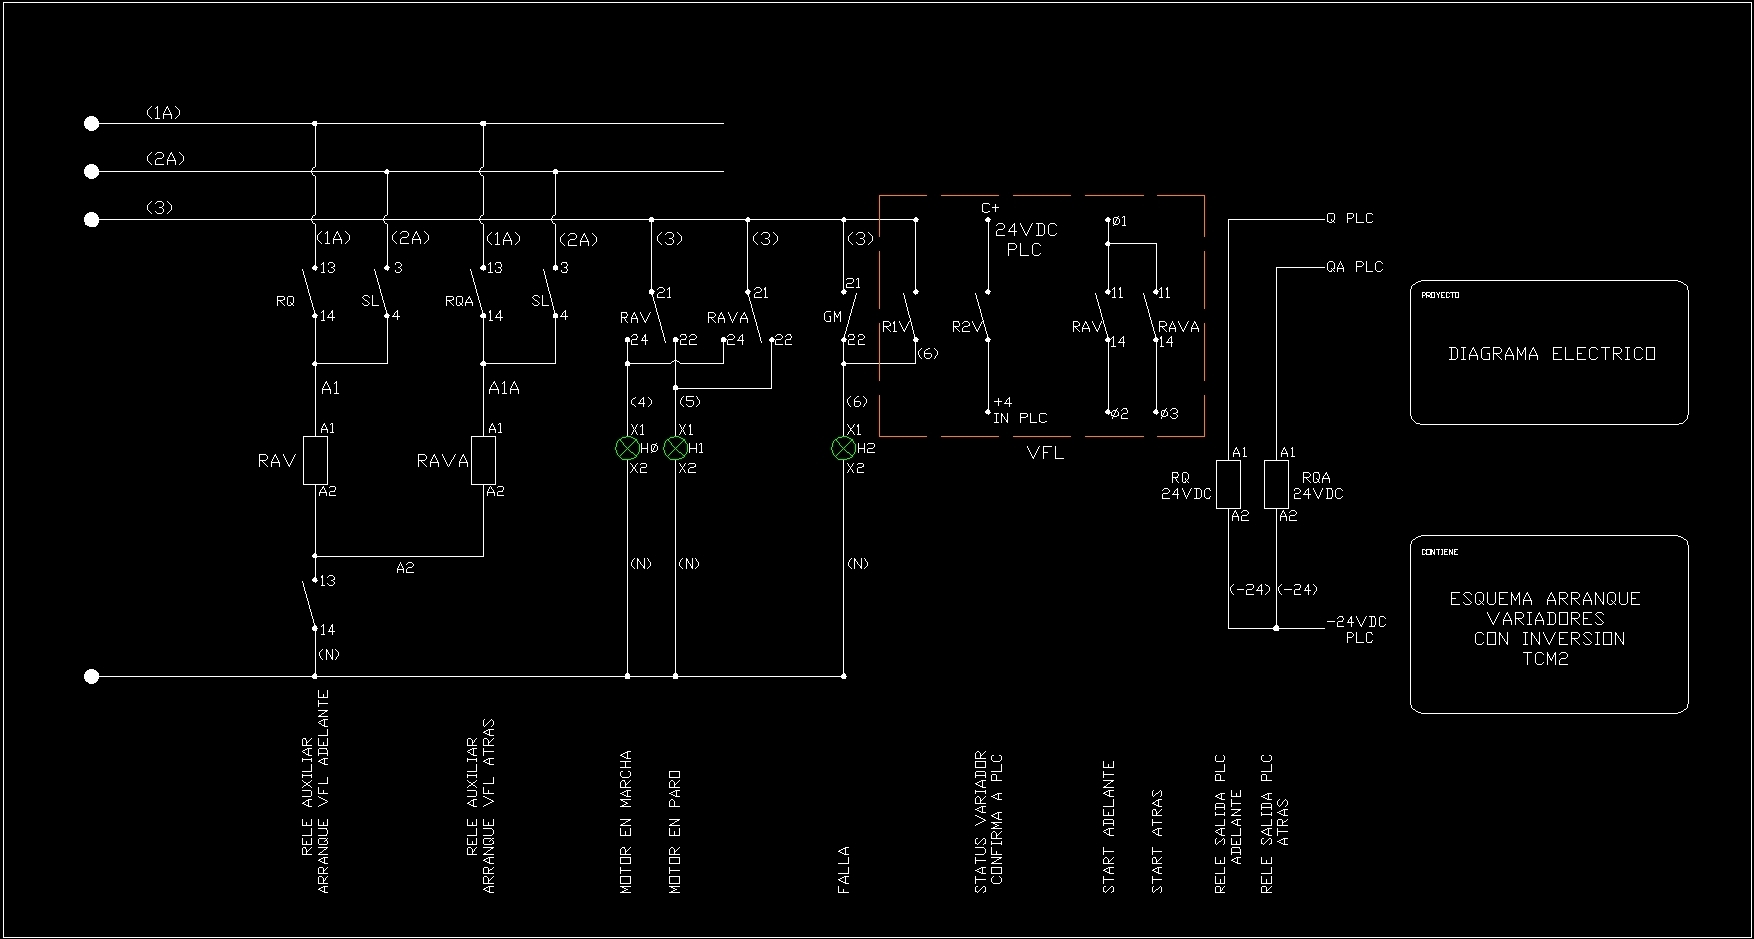 Diagramas El Ctricos DWG Block for AutoCAD bull Designs CAD